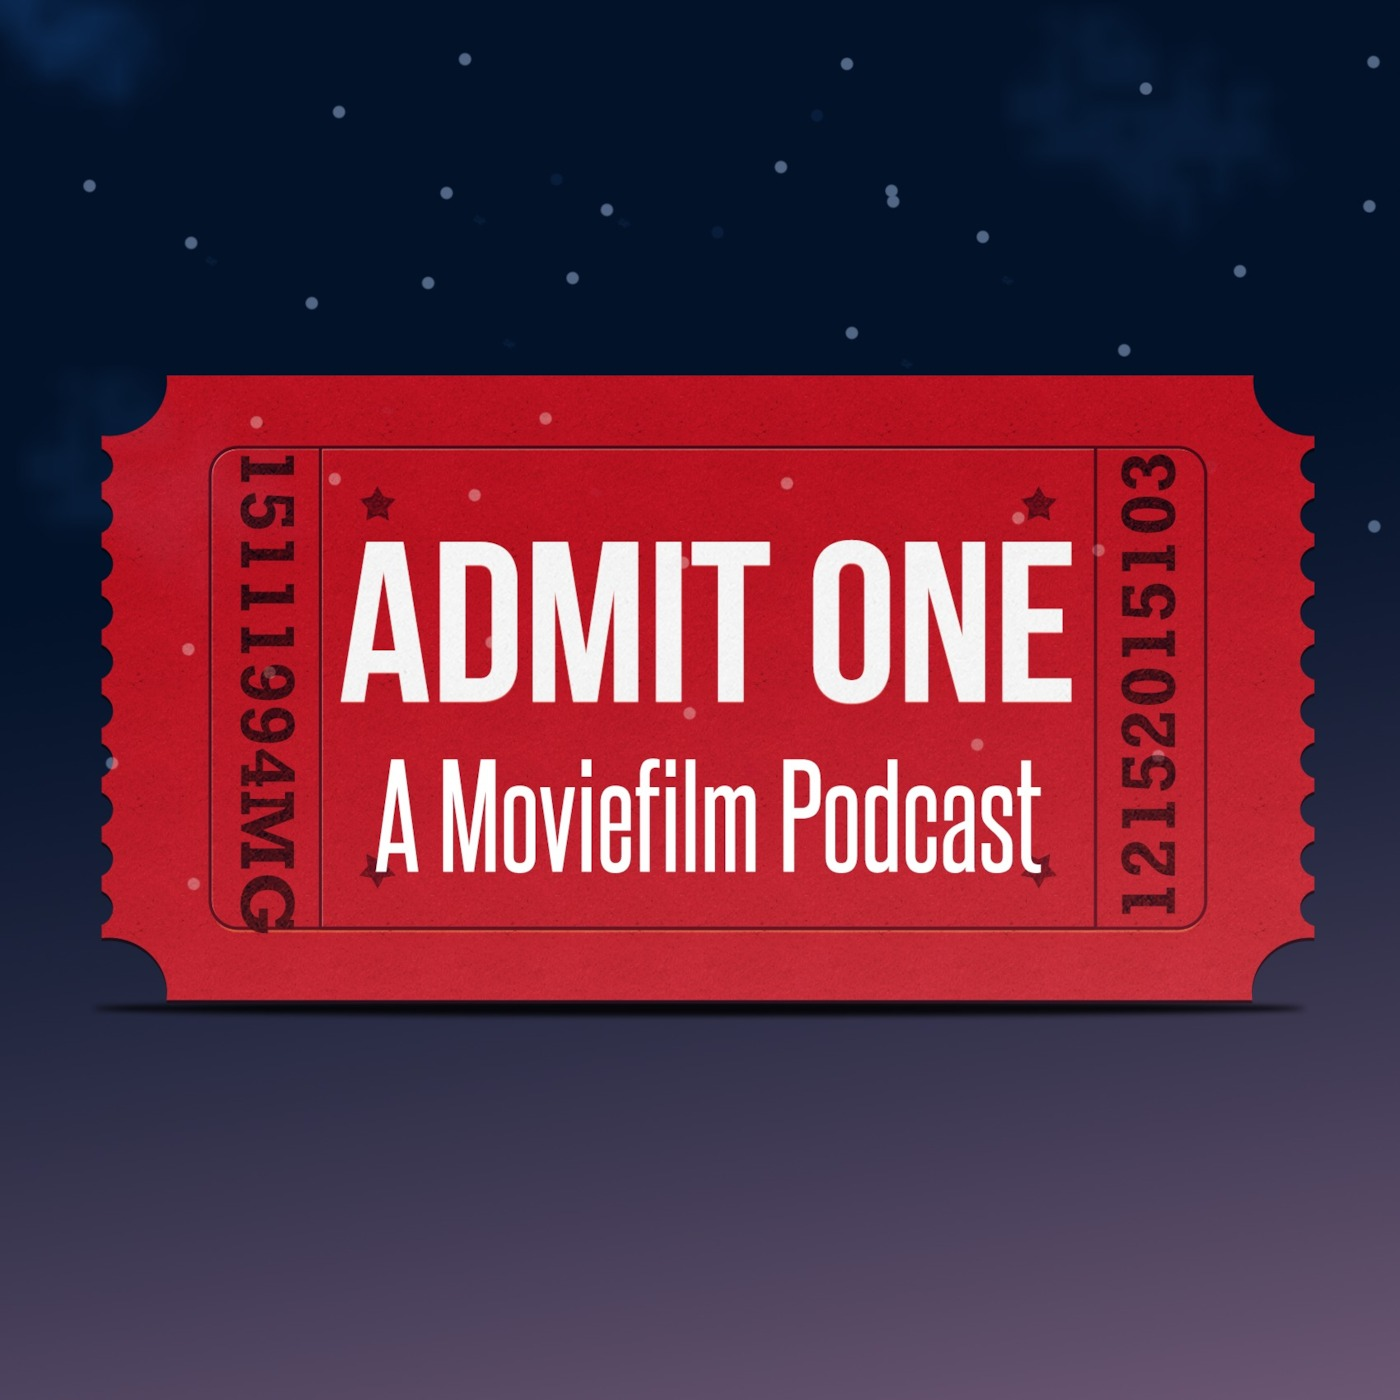 Admit One: A Moviefilm Podcast